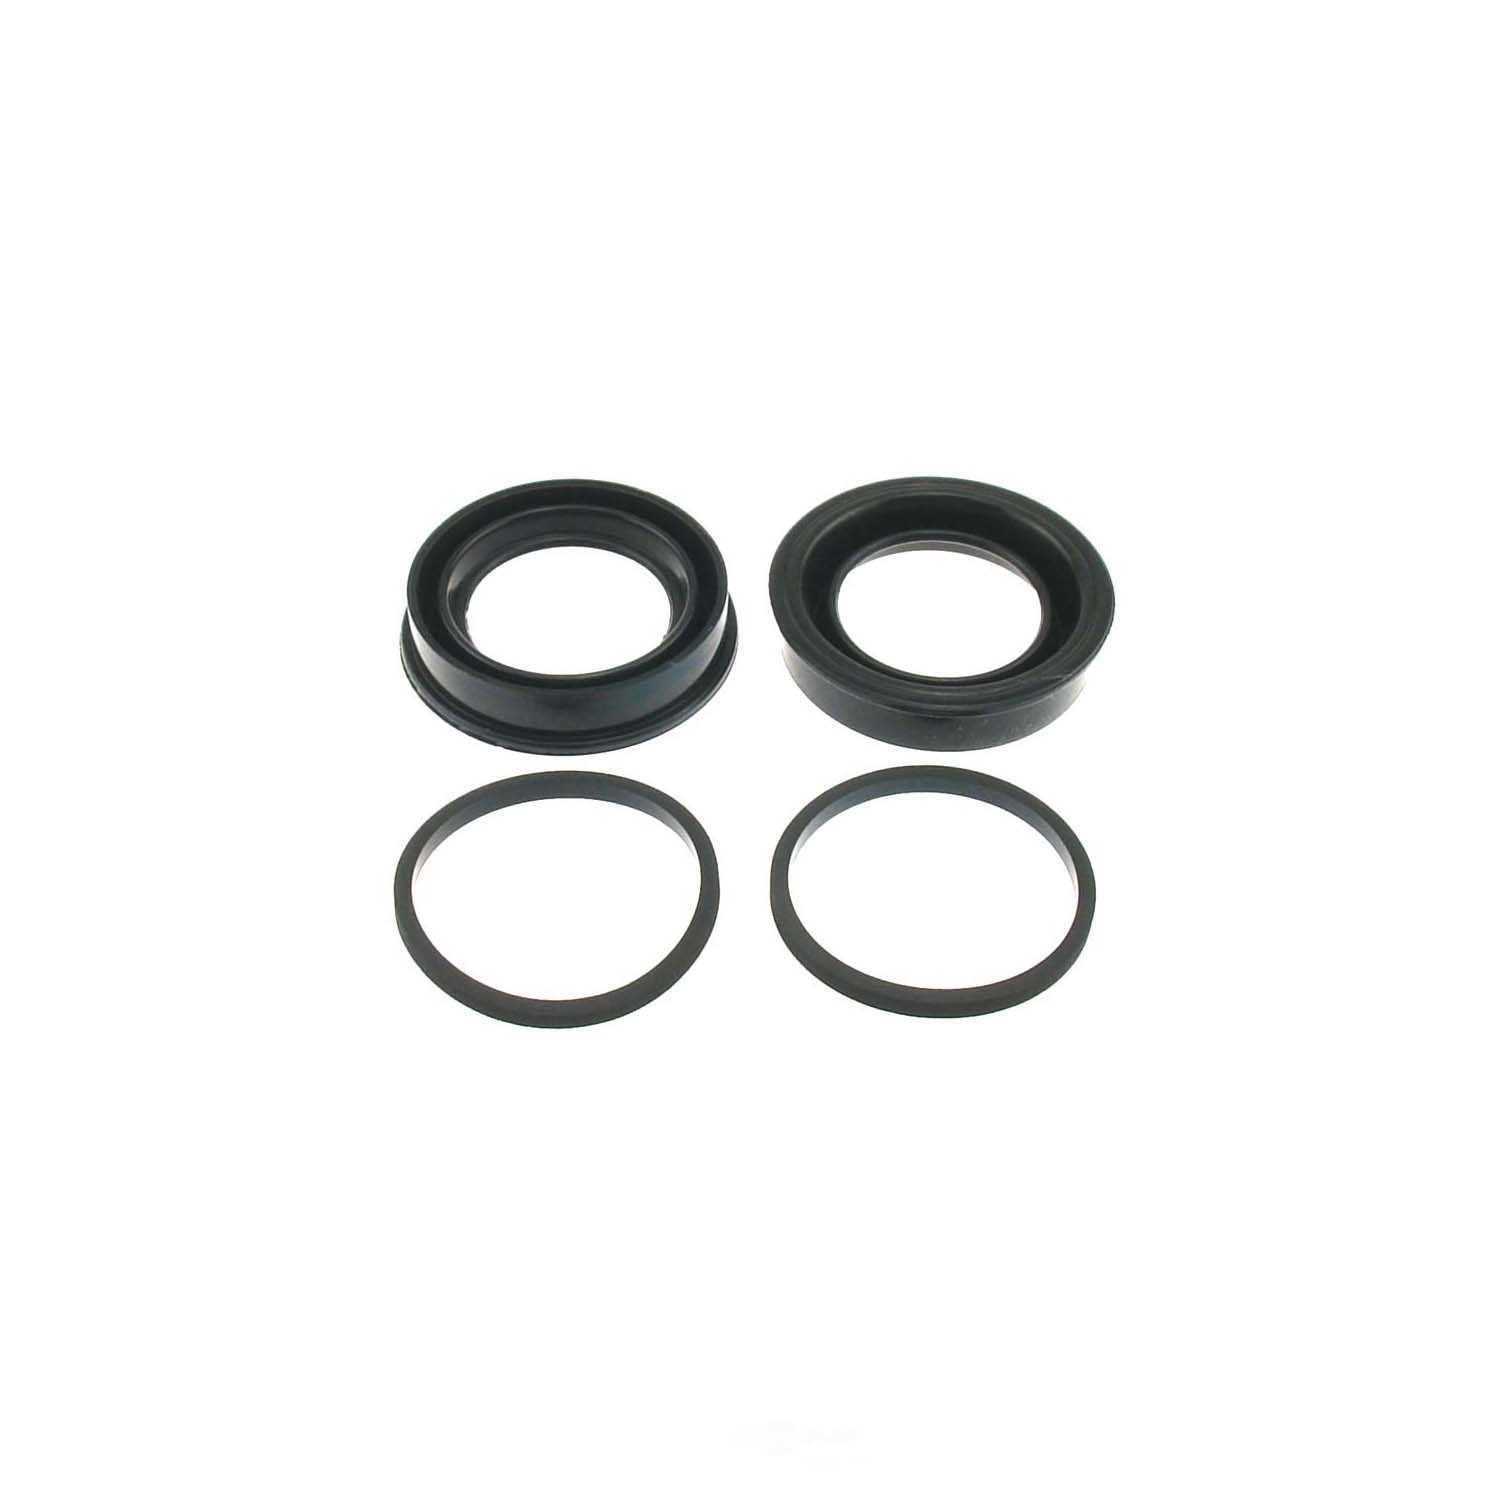 CARLSON QUALITY BRAKE PARTS - Disc Brake Caliper Repair Kit (Front) - CRL 41158